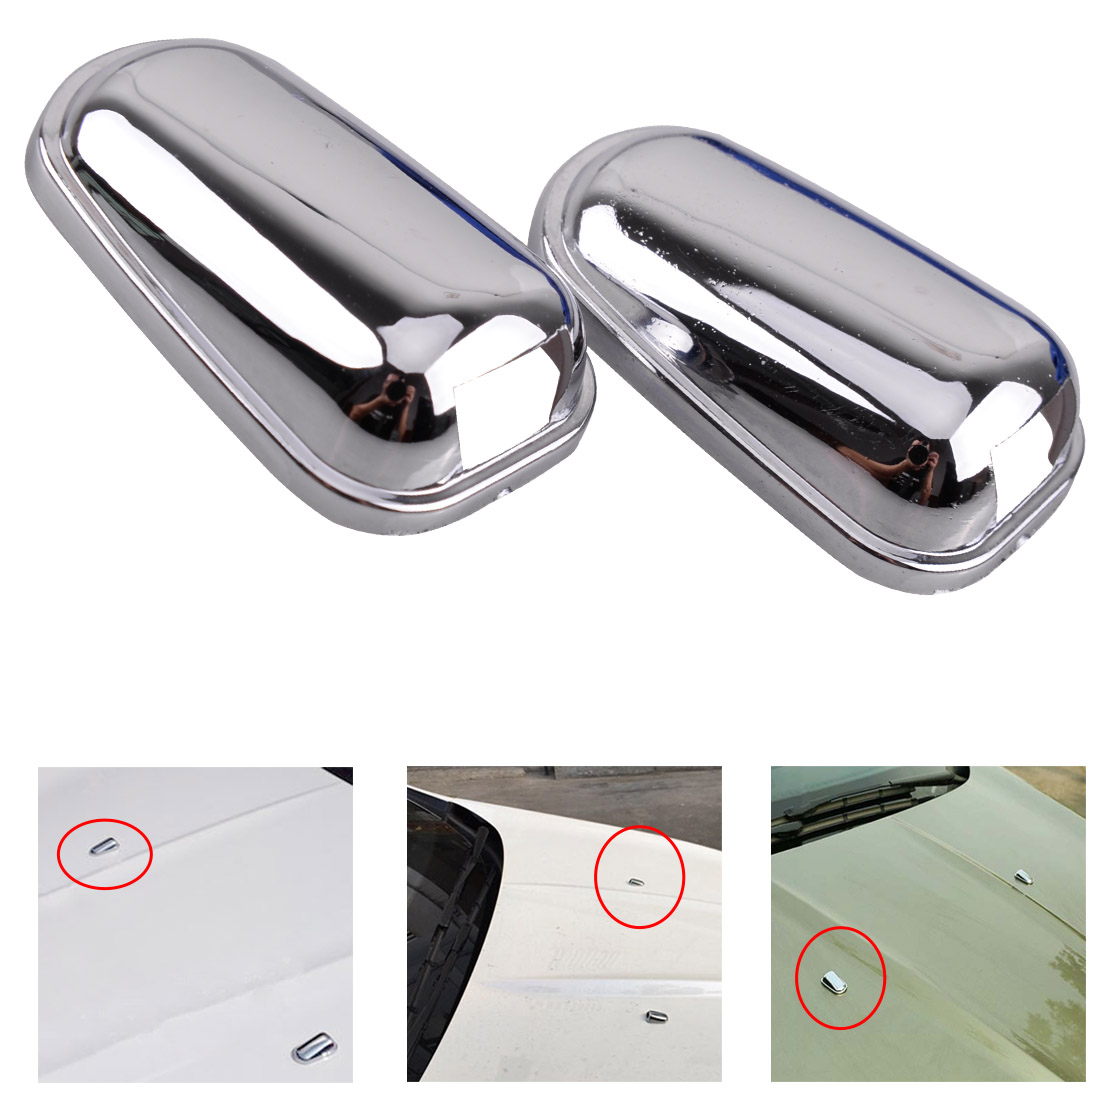 CITALL Car-styling 2pcs ABS Chrome Plated Windscreen Washer Cover Spray Nozzle Trim Fit for Ford Kuga Escape 2013 2014 2015 2016 image